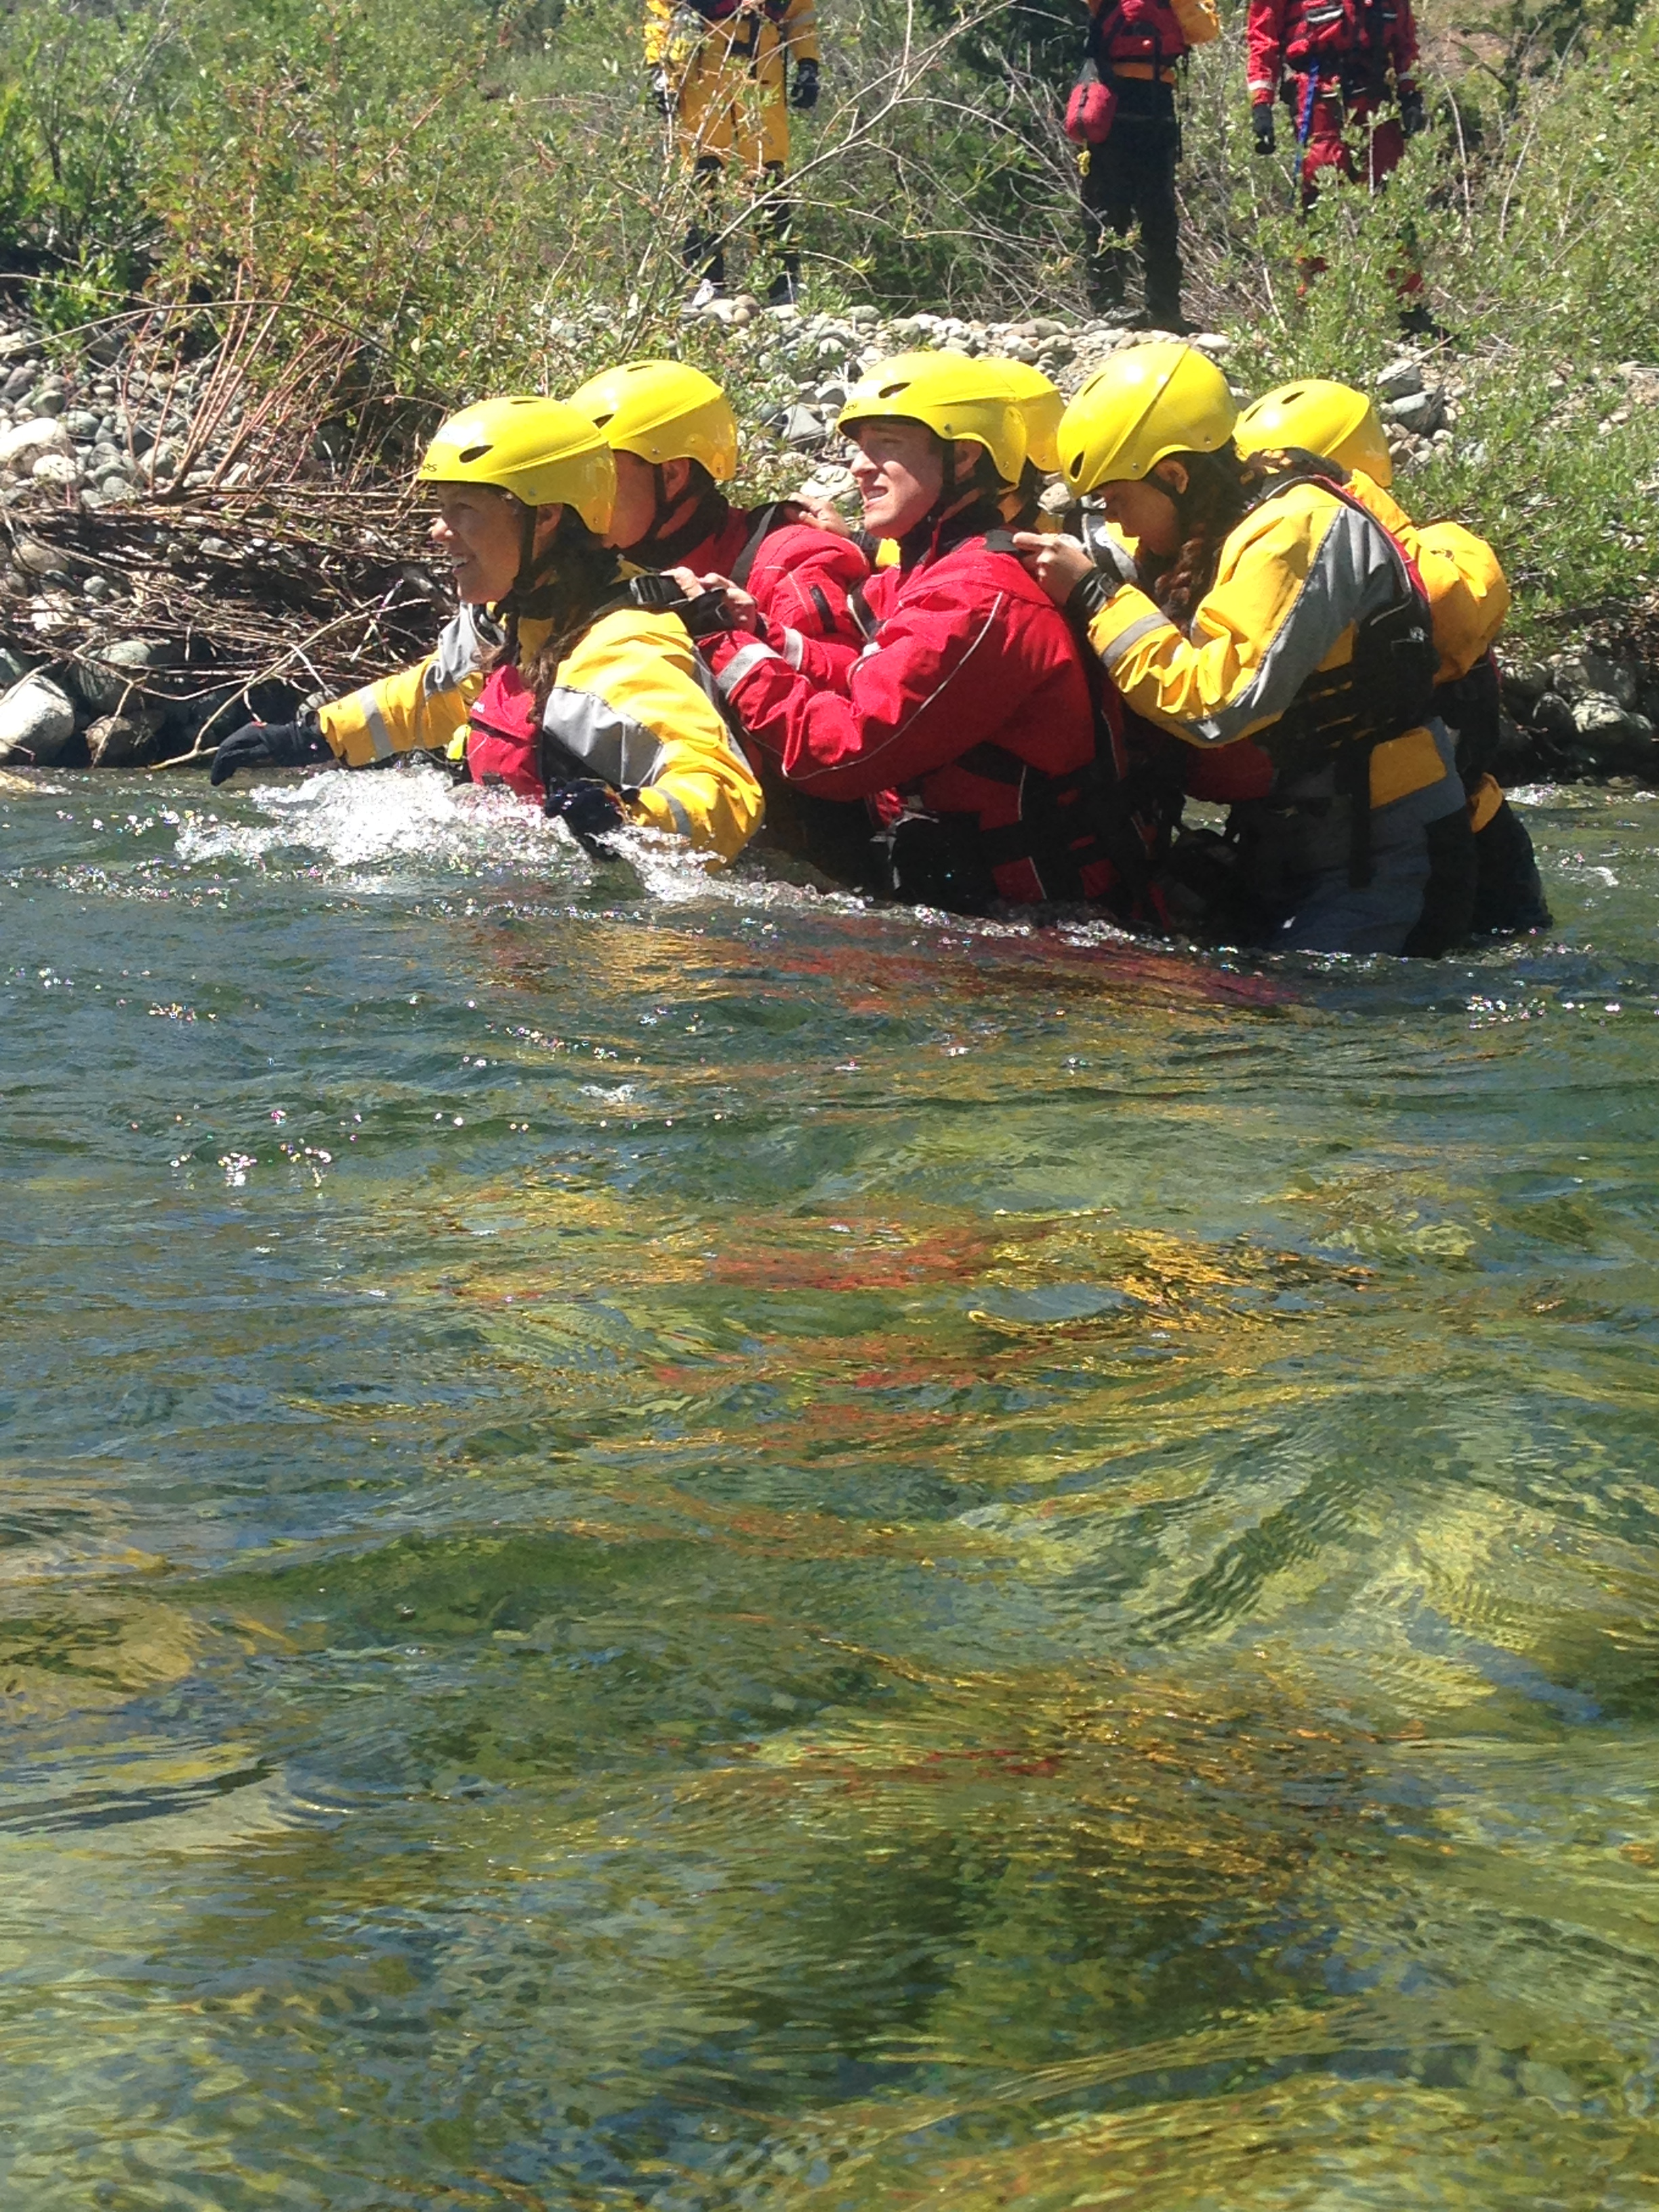 Working as a pack during swift water rescue training.